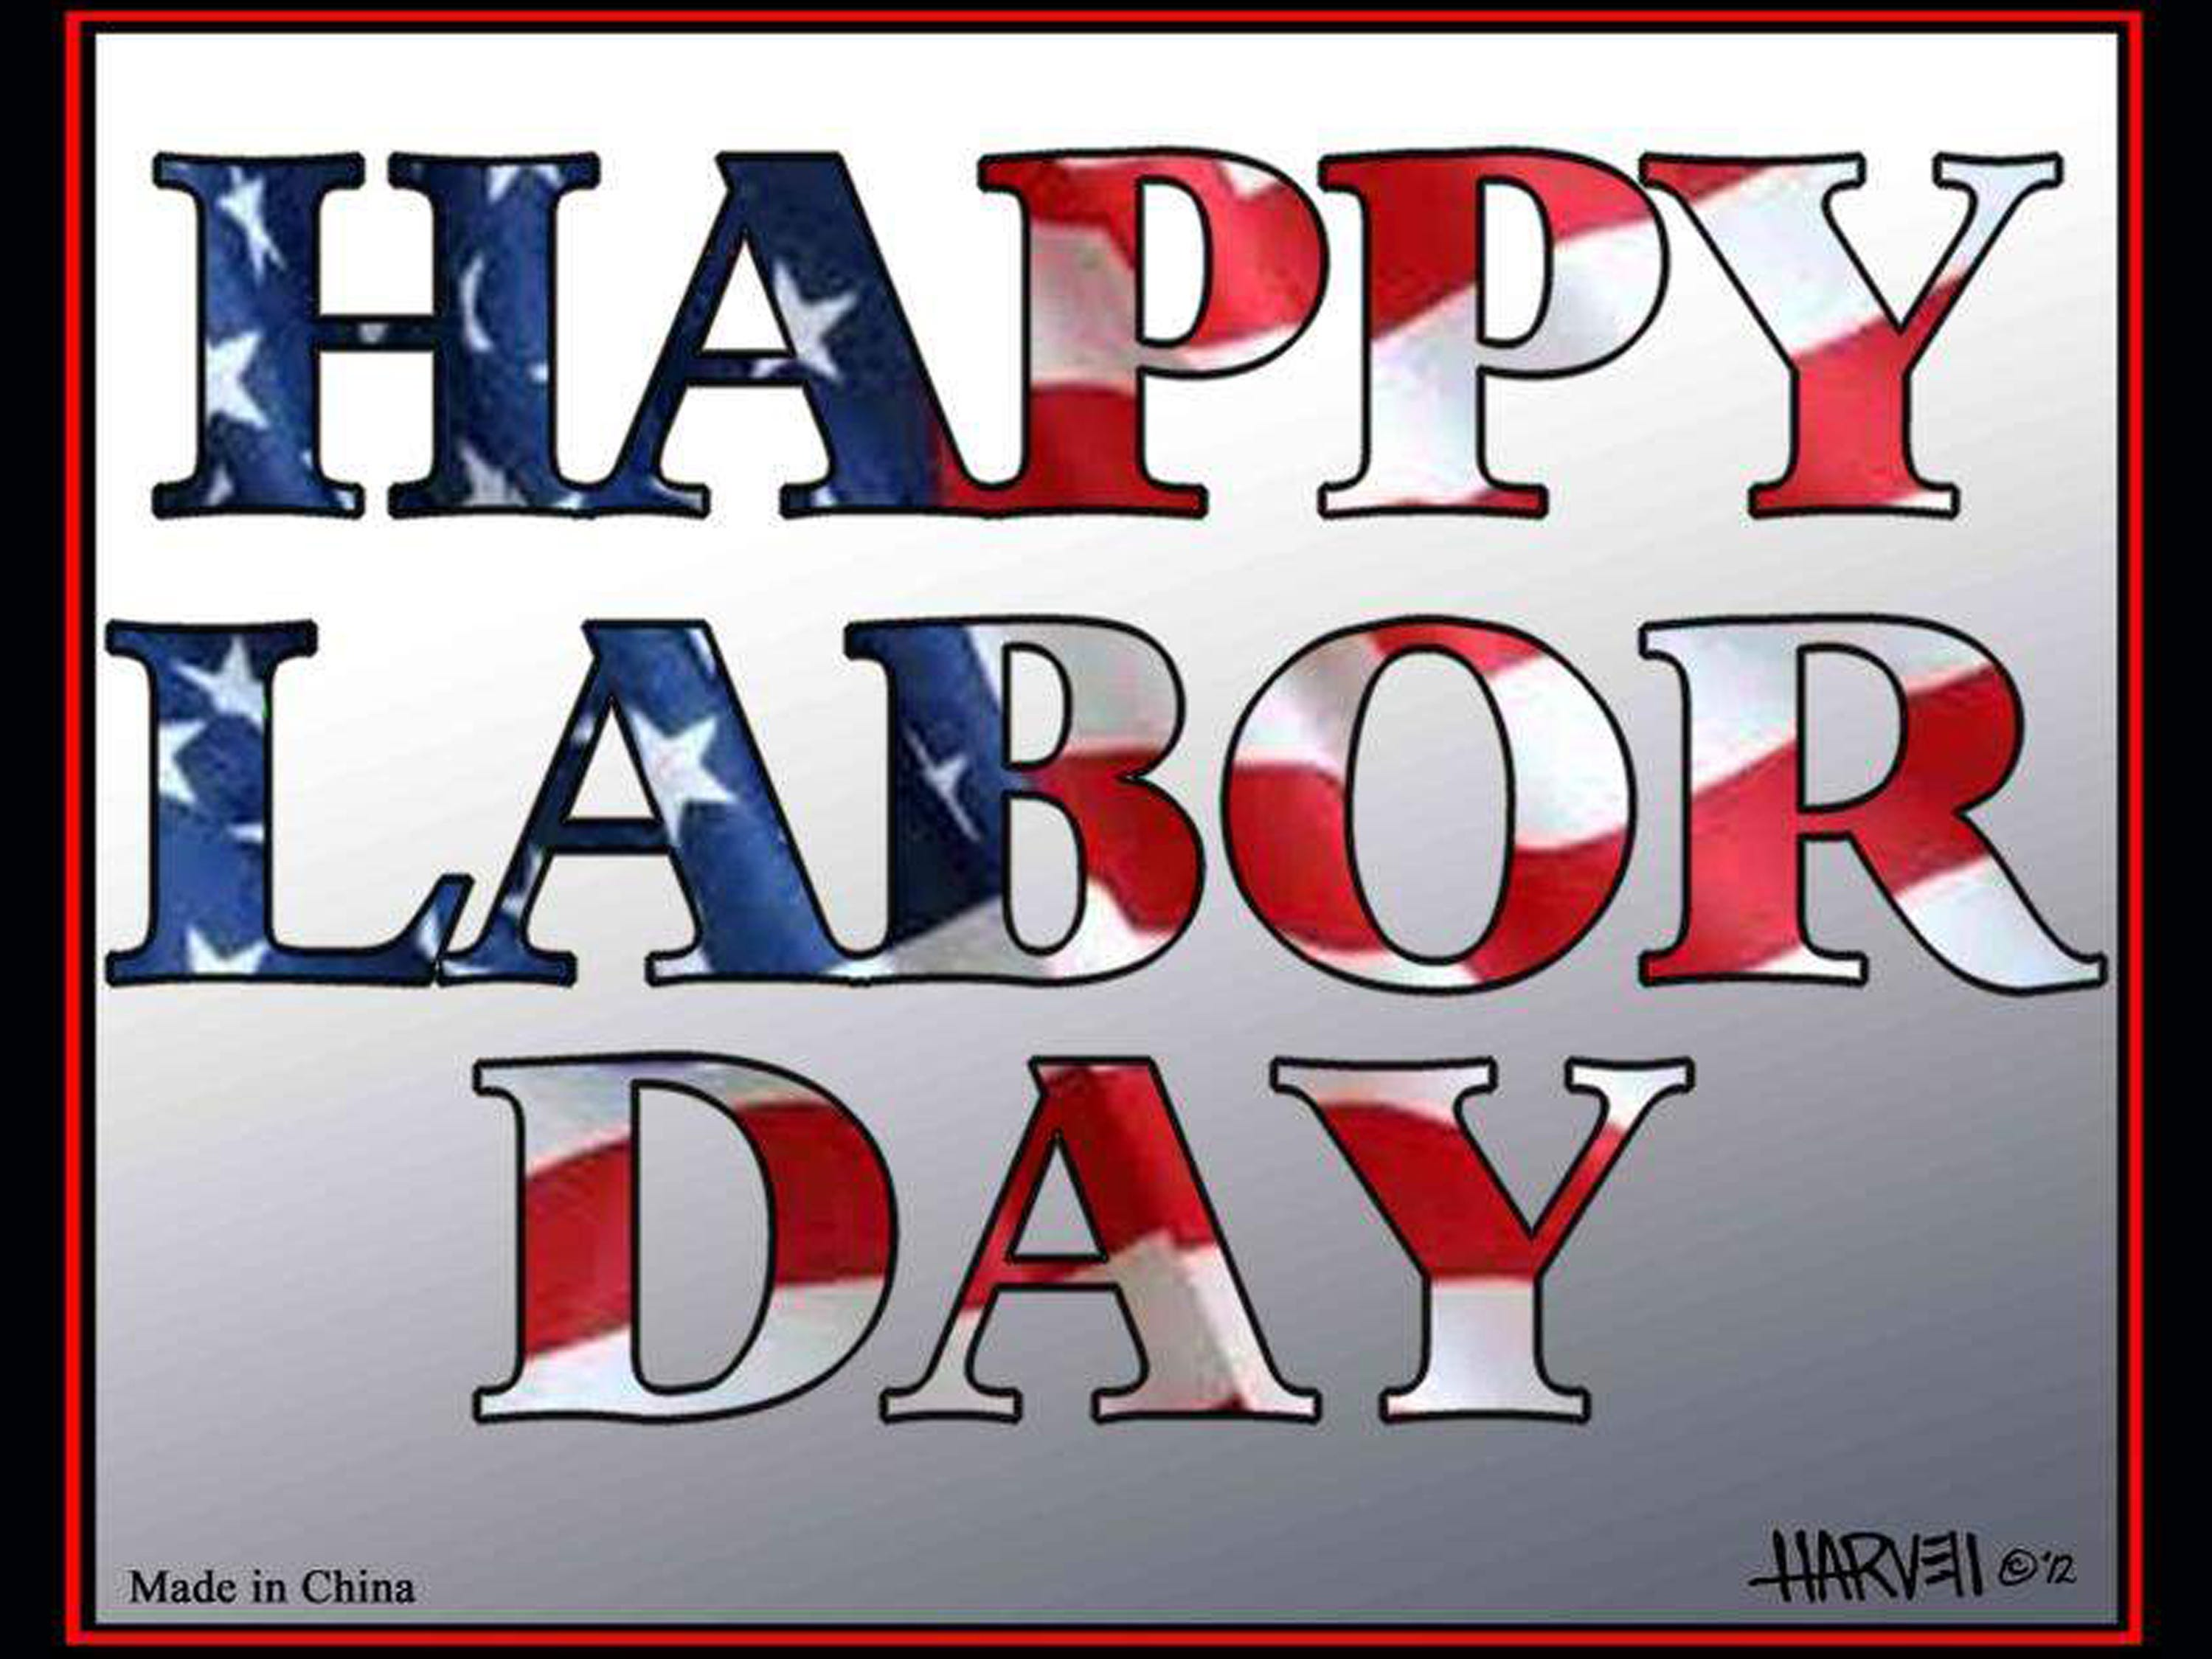 Originally published for Labor Day 2012. The cartoonist's homepage, greenvilleonline.com/opinion.